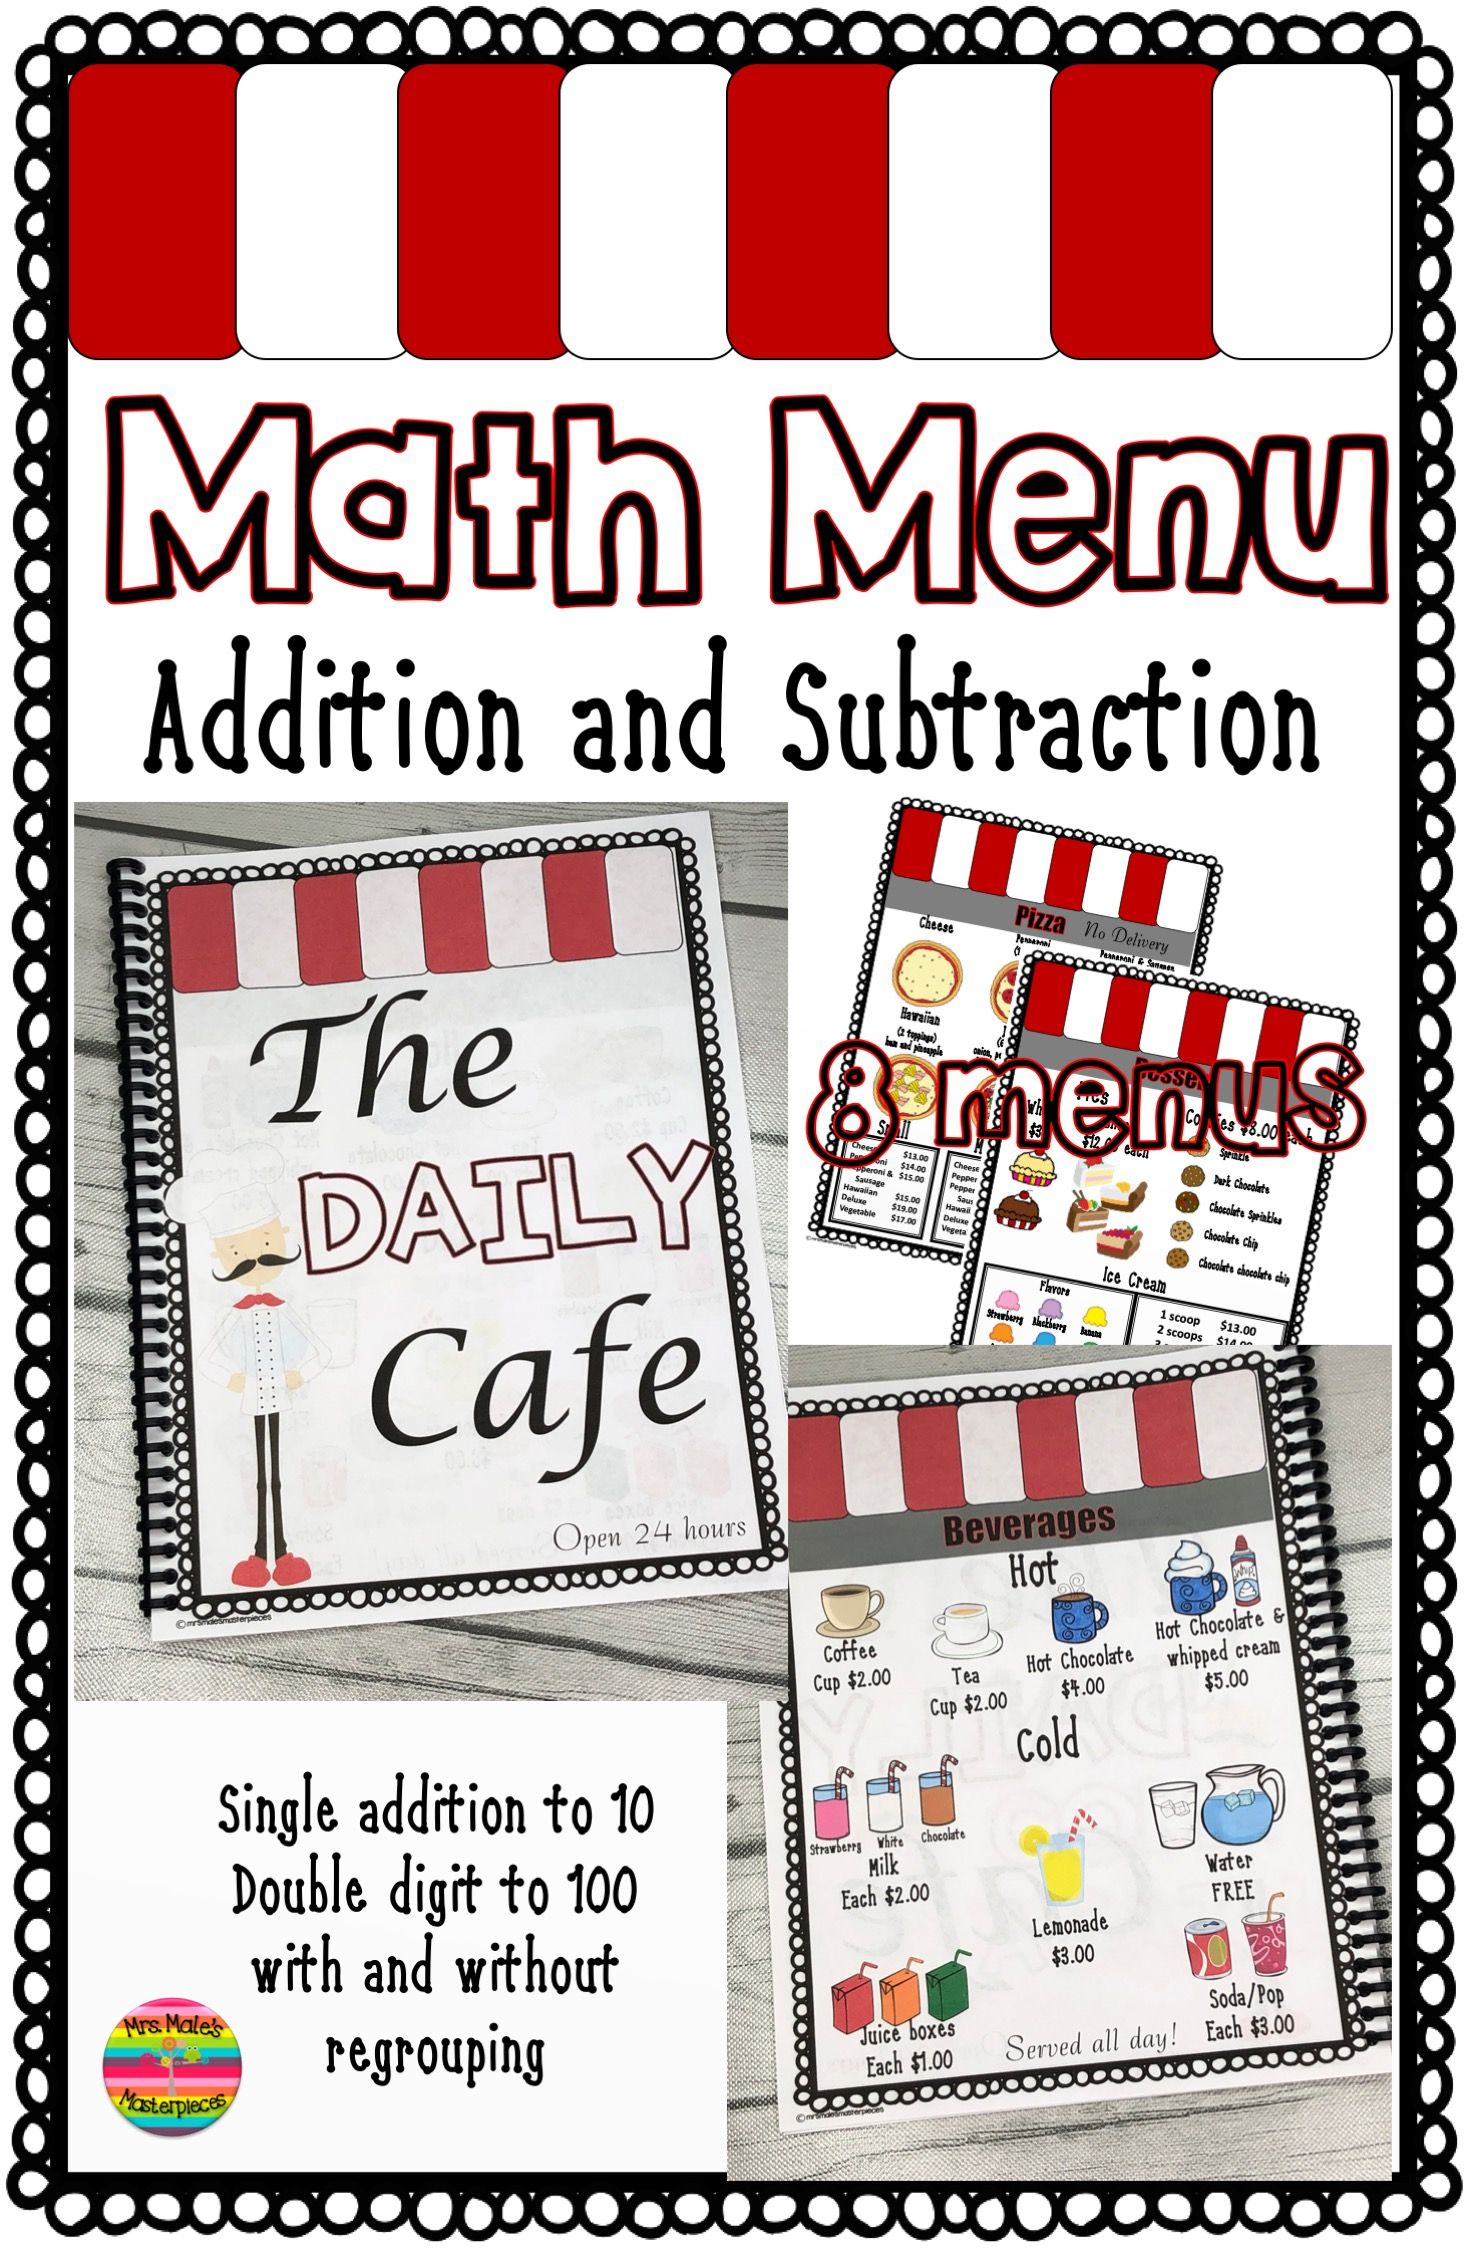 Addition And Subtraction Worksheets Math Menu Addition And Subtraction Worksheets Subtraction Worksheets Math Worksheets